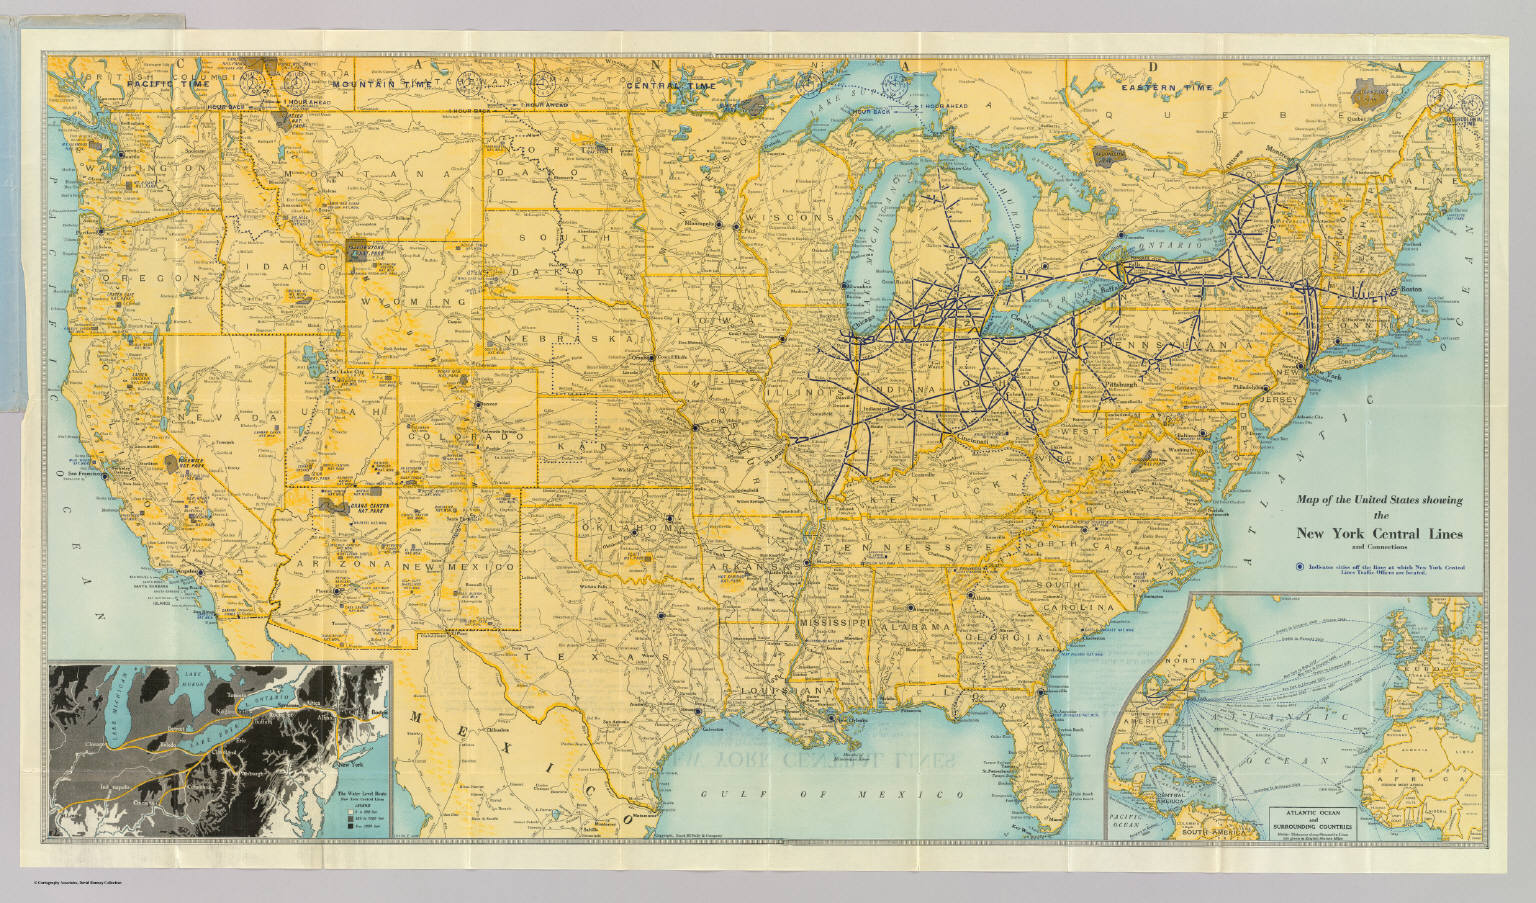 U.S. showing NY Central Lines. - David Rumsey Historical Map ...